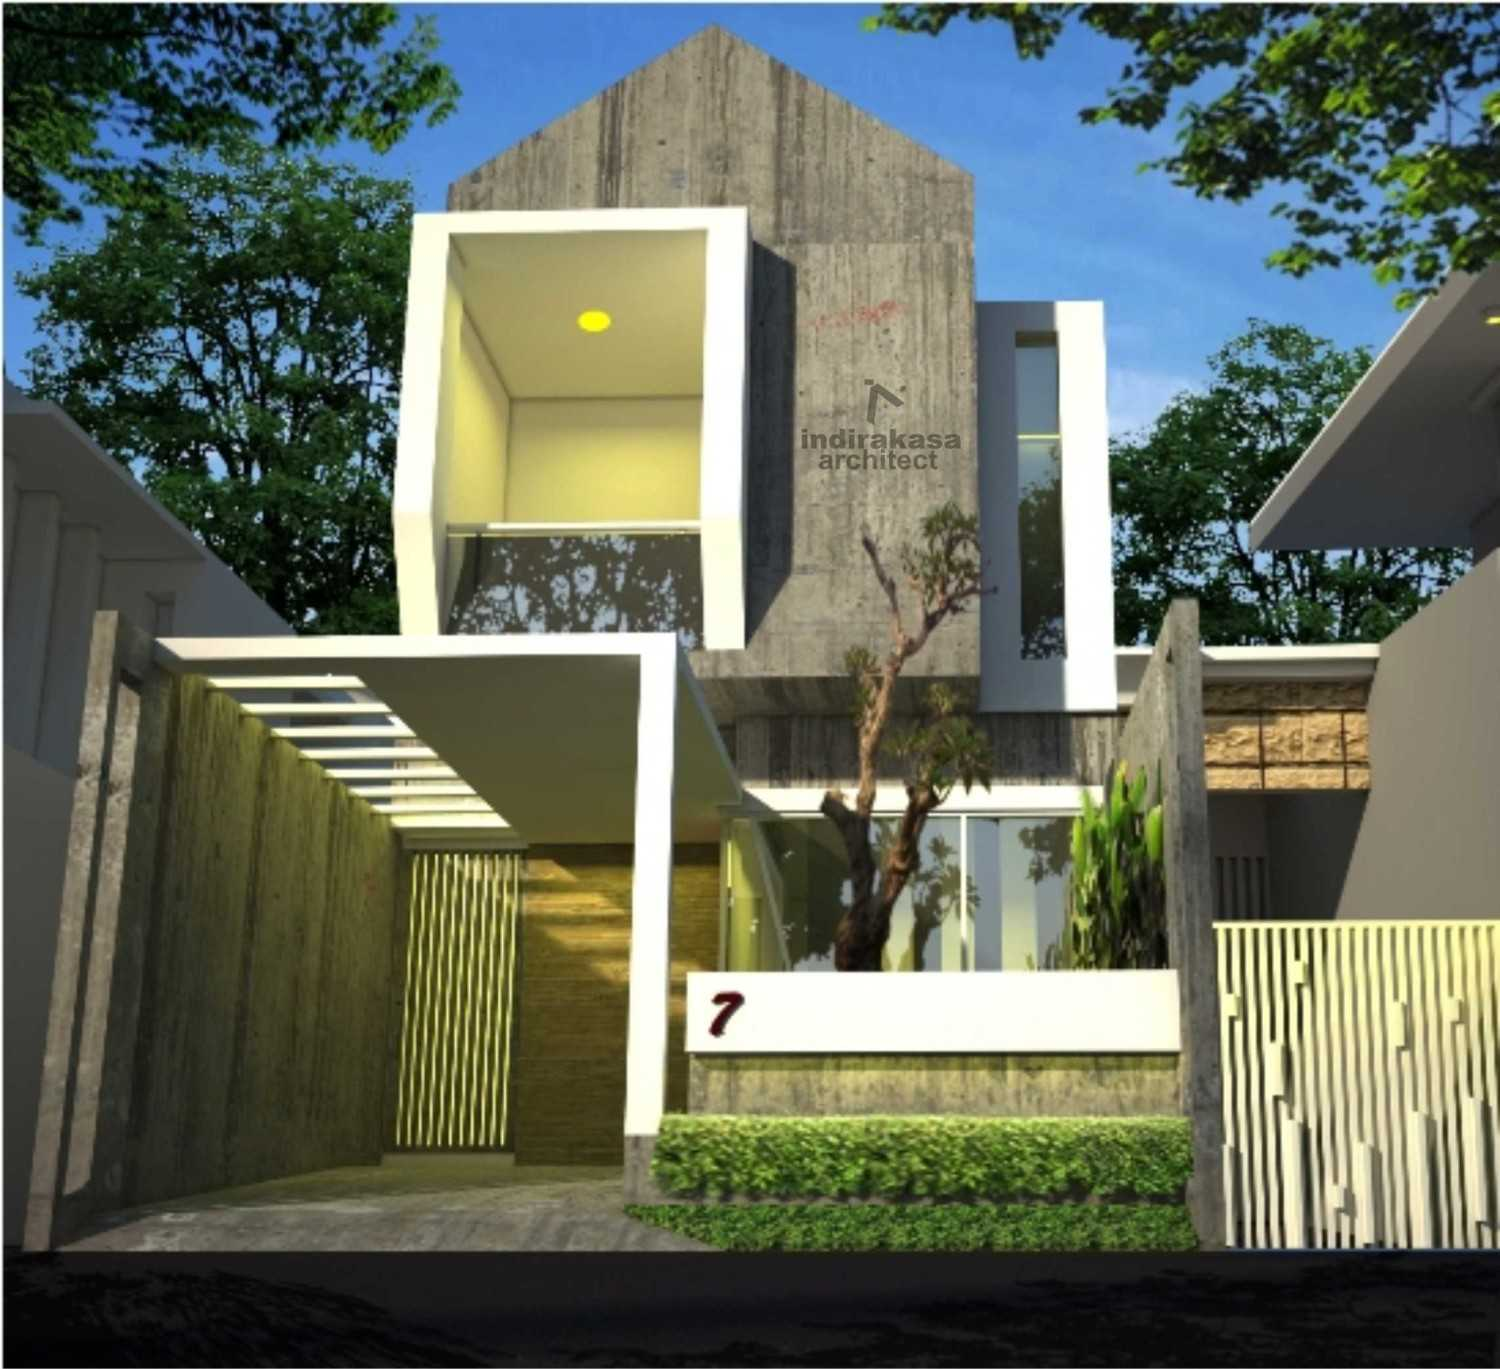 Jasa Design and Build Aditya Wijaya / Studio indirakasa di Sidoarjo